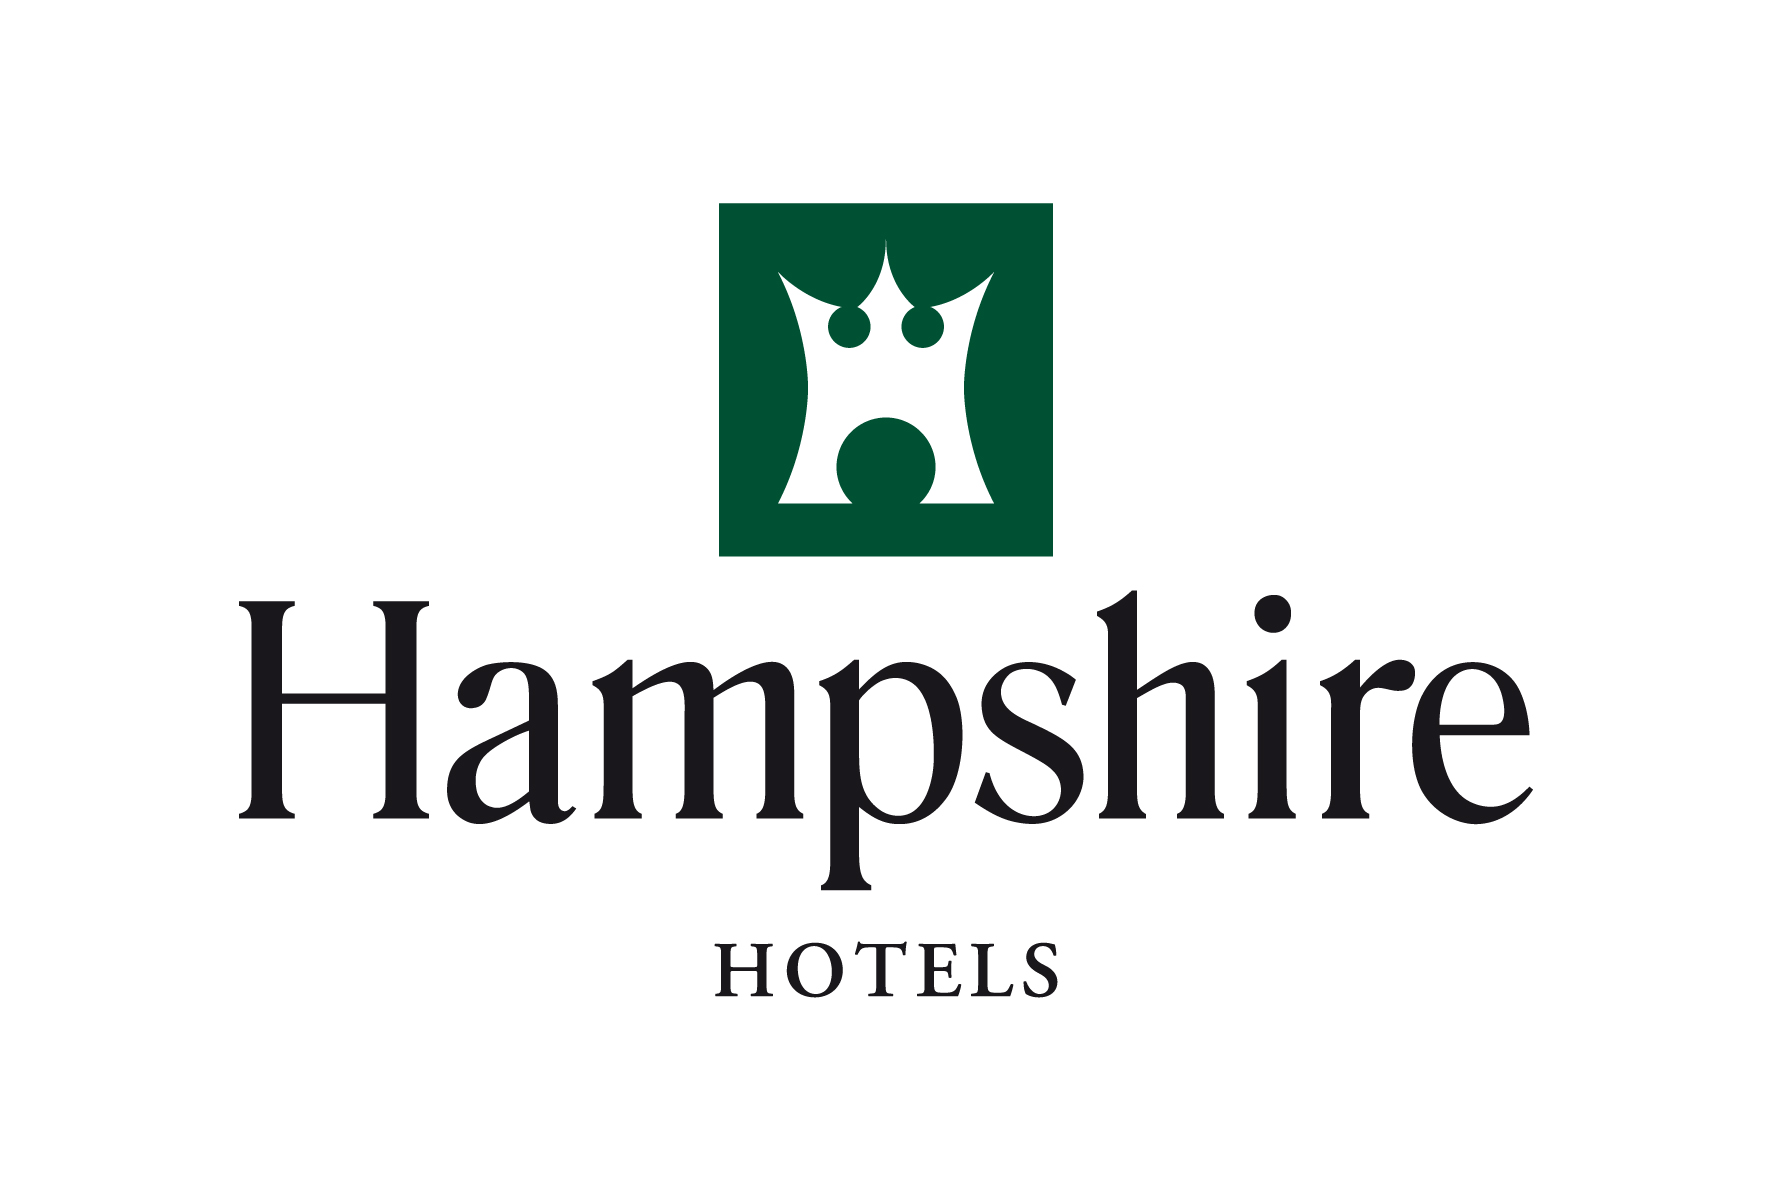 HAMPSHIRE HOTELS BENOEMT DIRECTOR OF HOTEL OPERATIONS